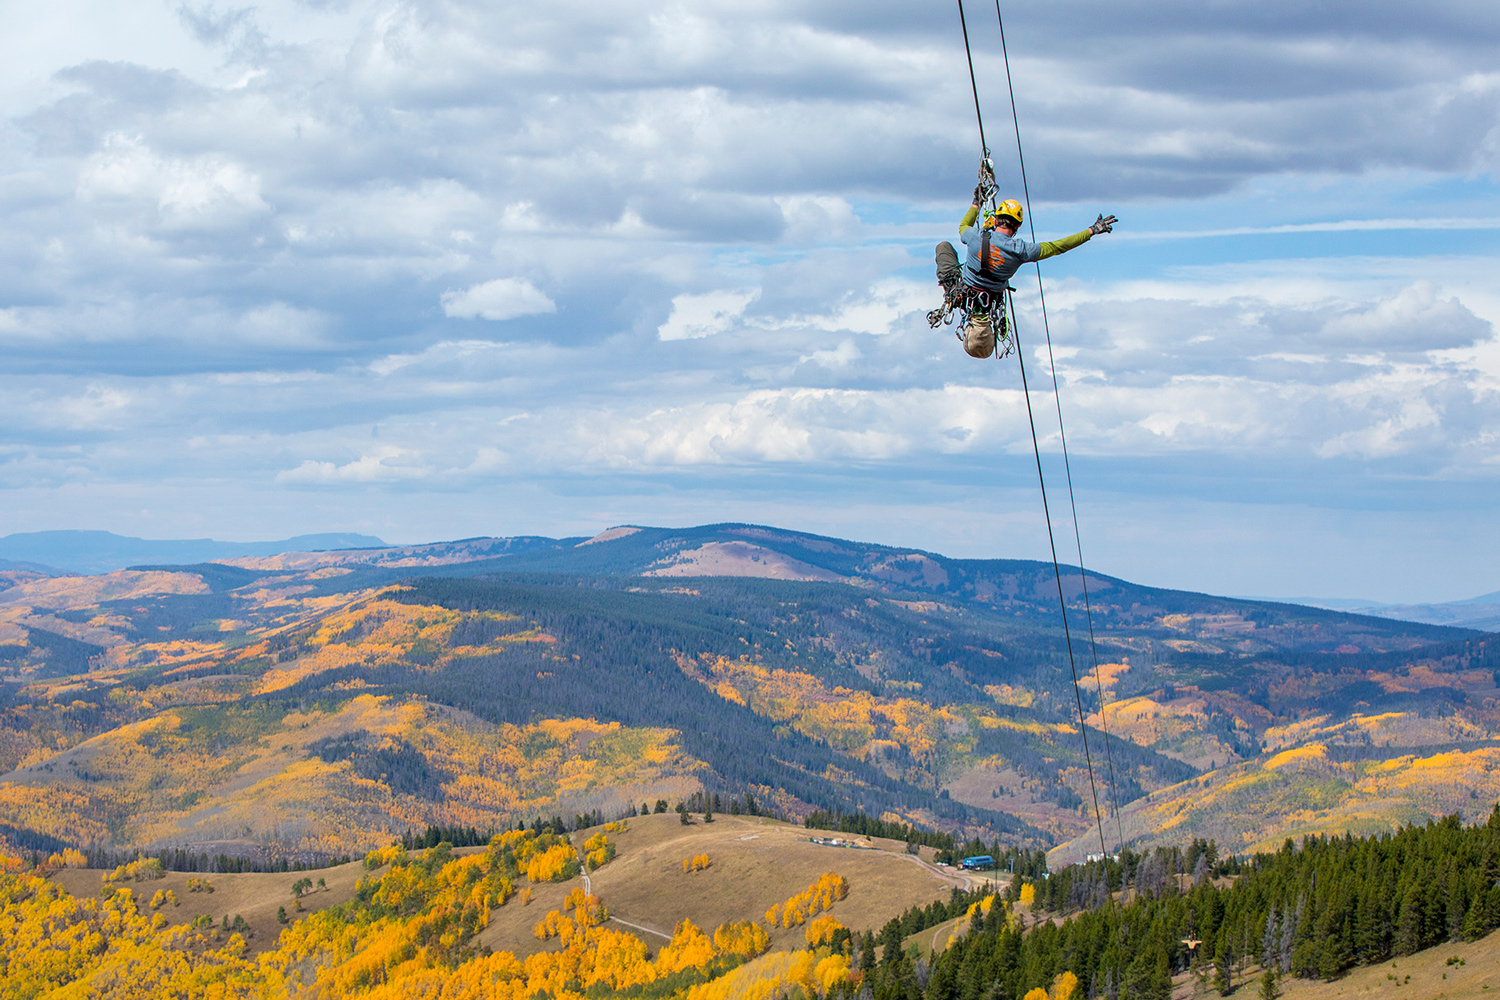 An employee tests the 1,200-foot-long zipline, which opened summer 2016 for Vail Resorts' summer activities.